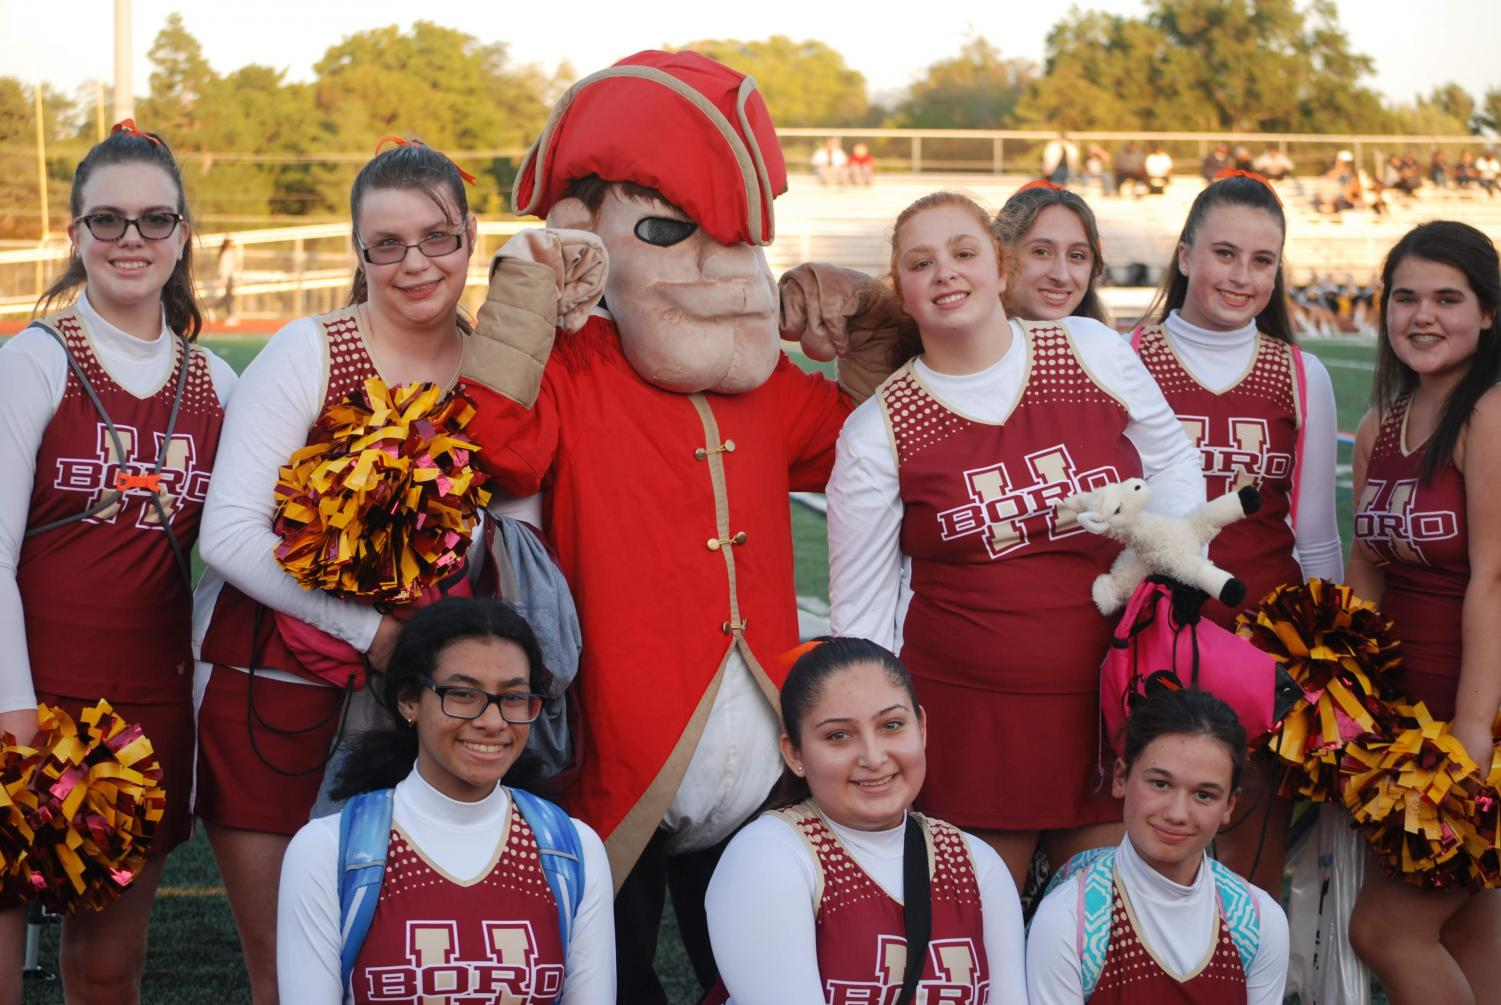 The Rockin' Raiders Cheer Team with the school mascot at the Franklin football game.